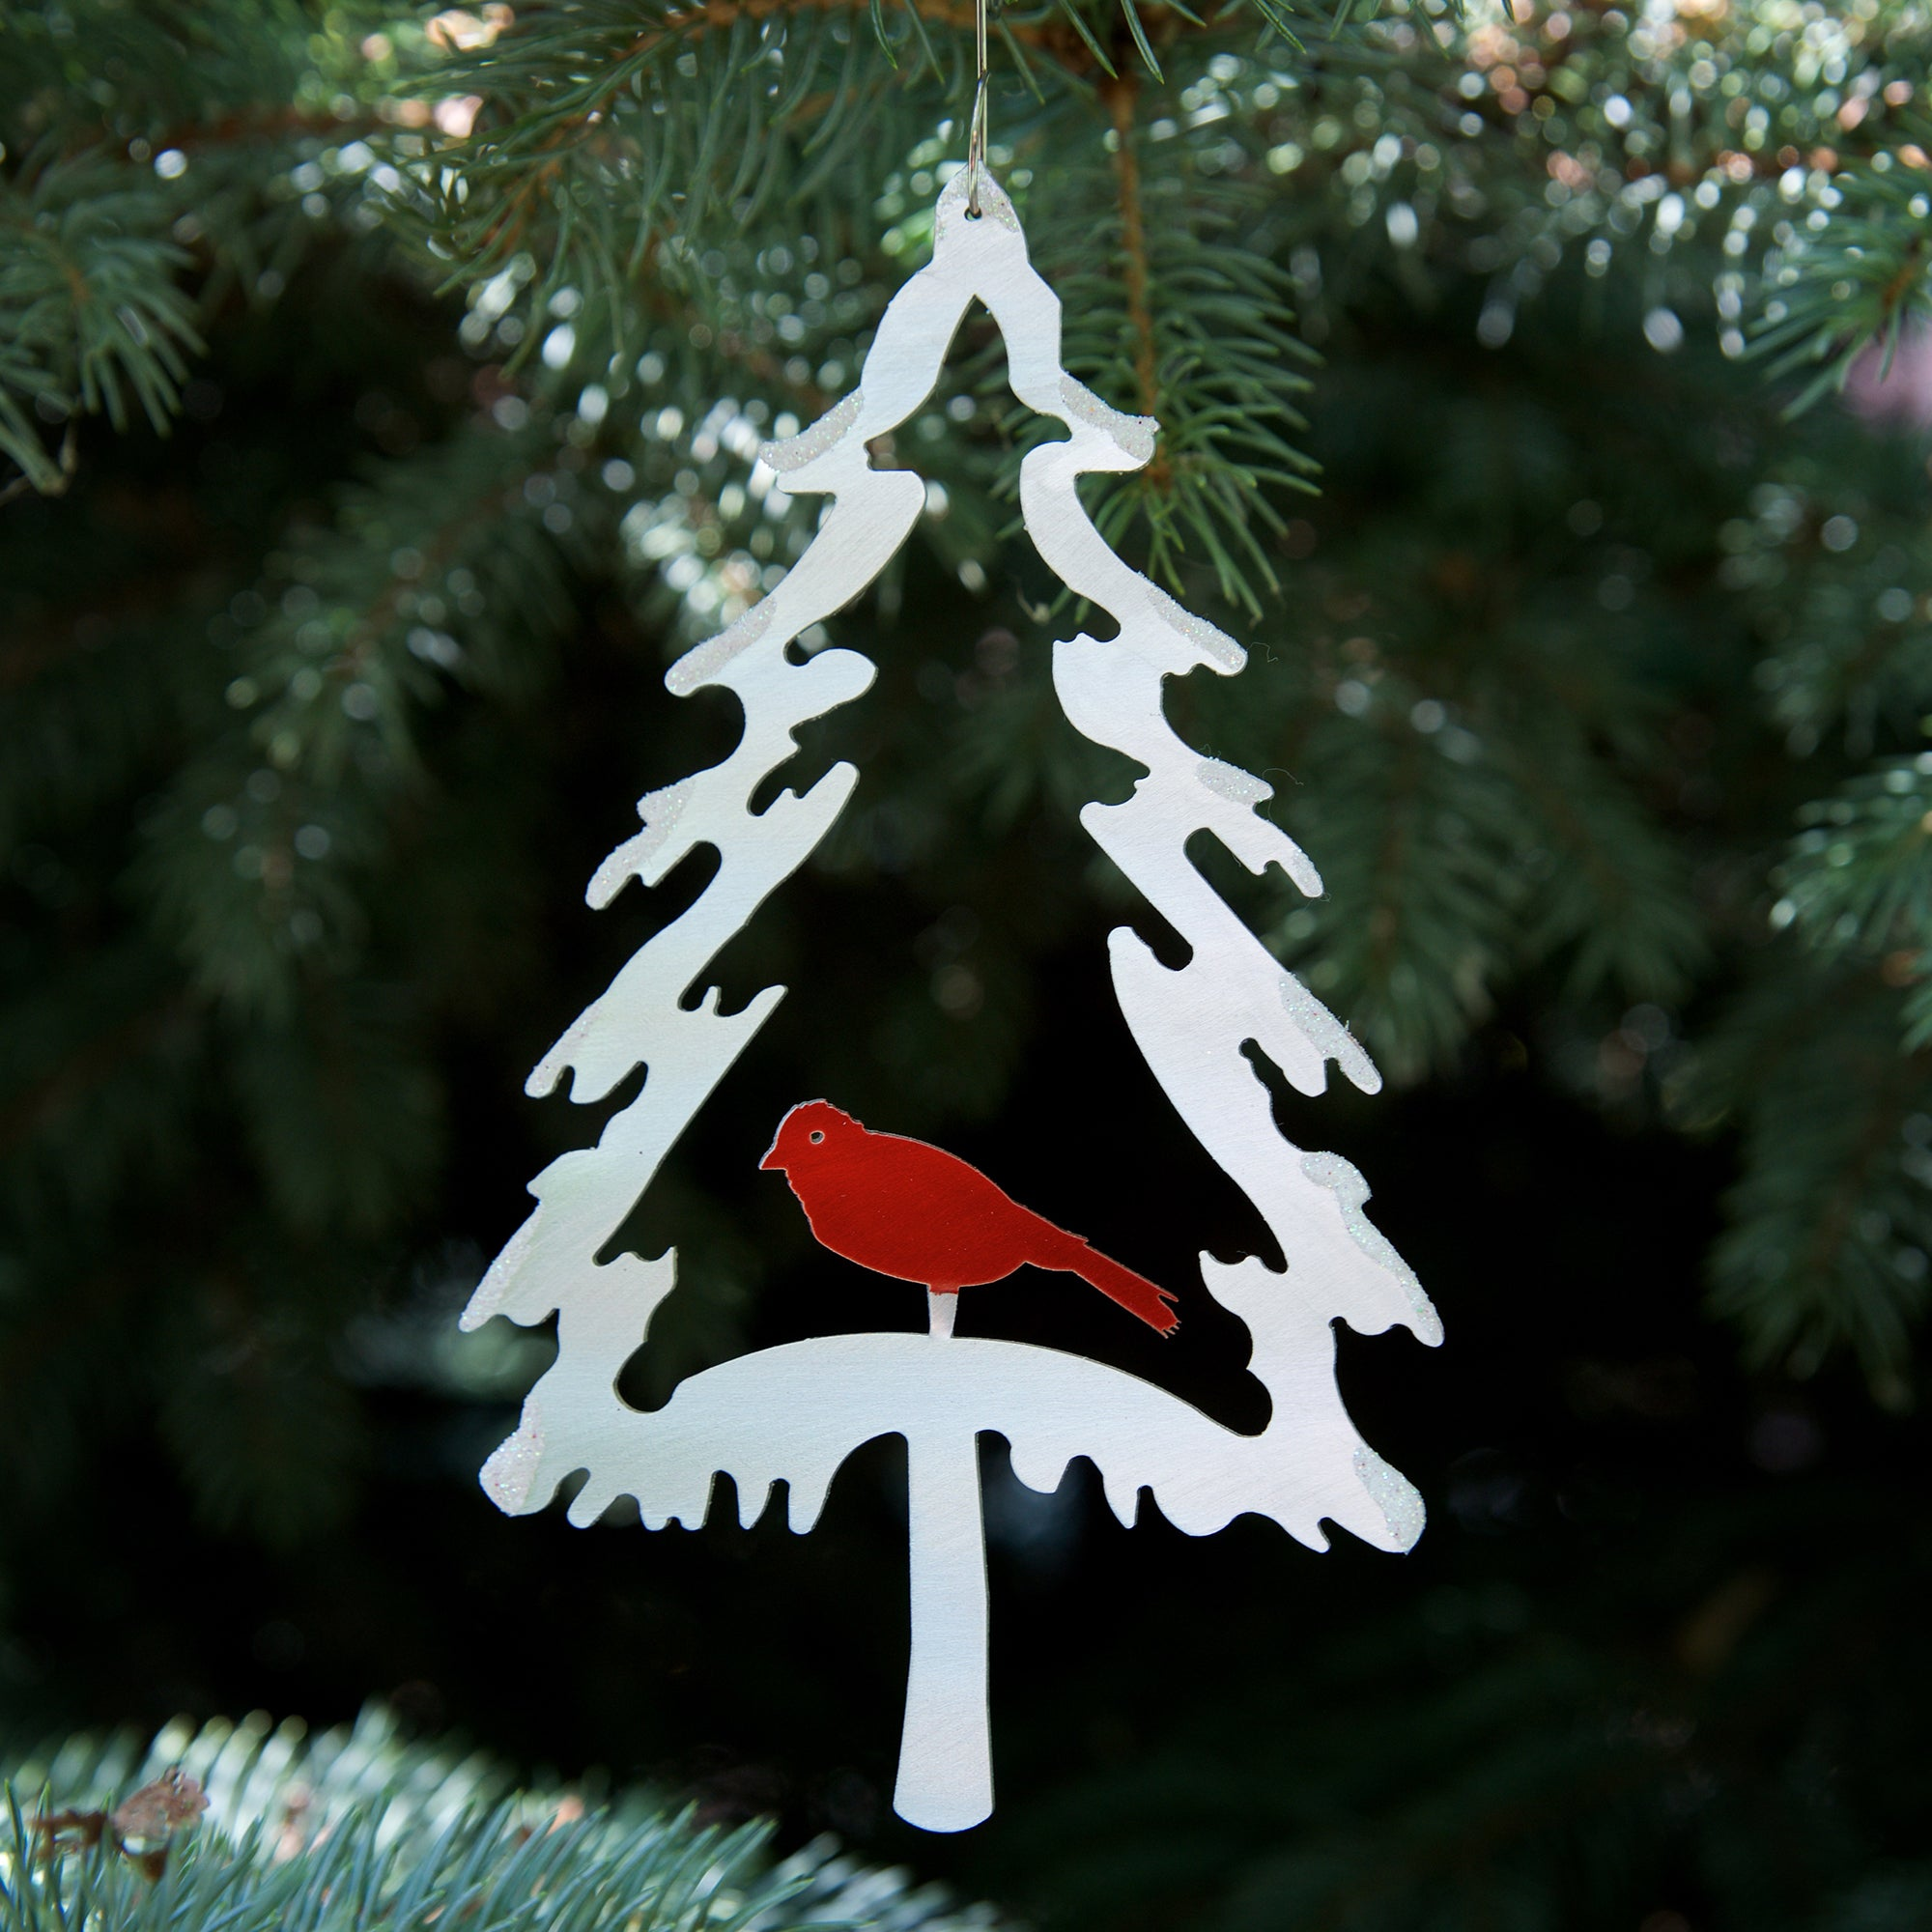 Evergreen Bird Ornament - by Sondra Gerber - ©2019 Metal Petal Art